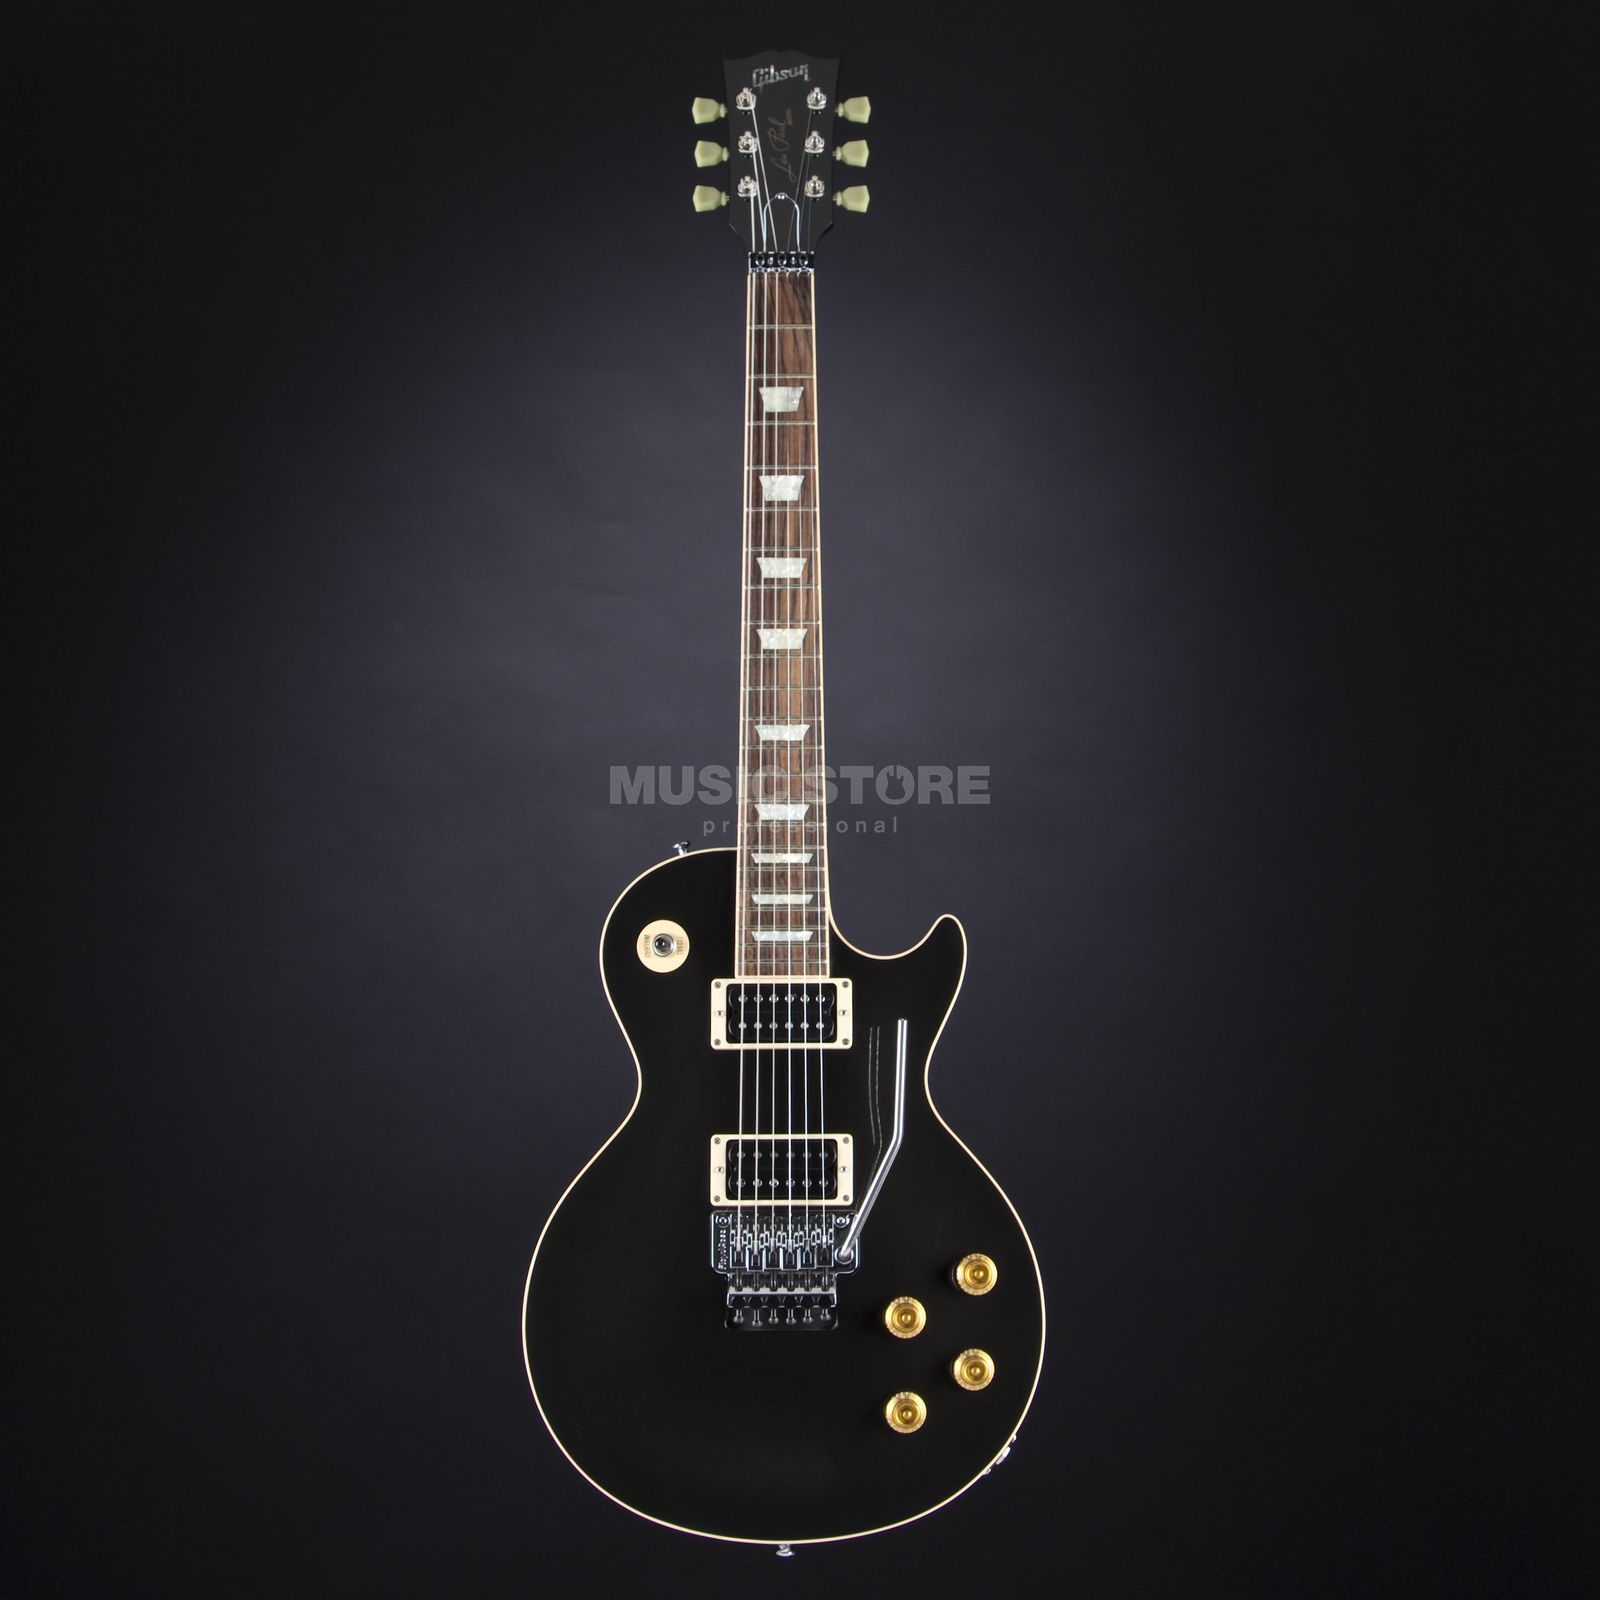 Gibson Les Paul Axcess Standard Floyd Rose Gun Metal Grey #CS500873 Produktbild